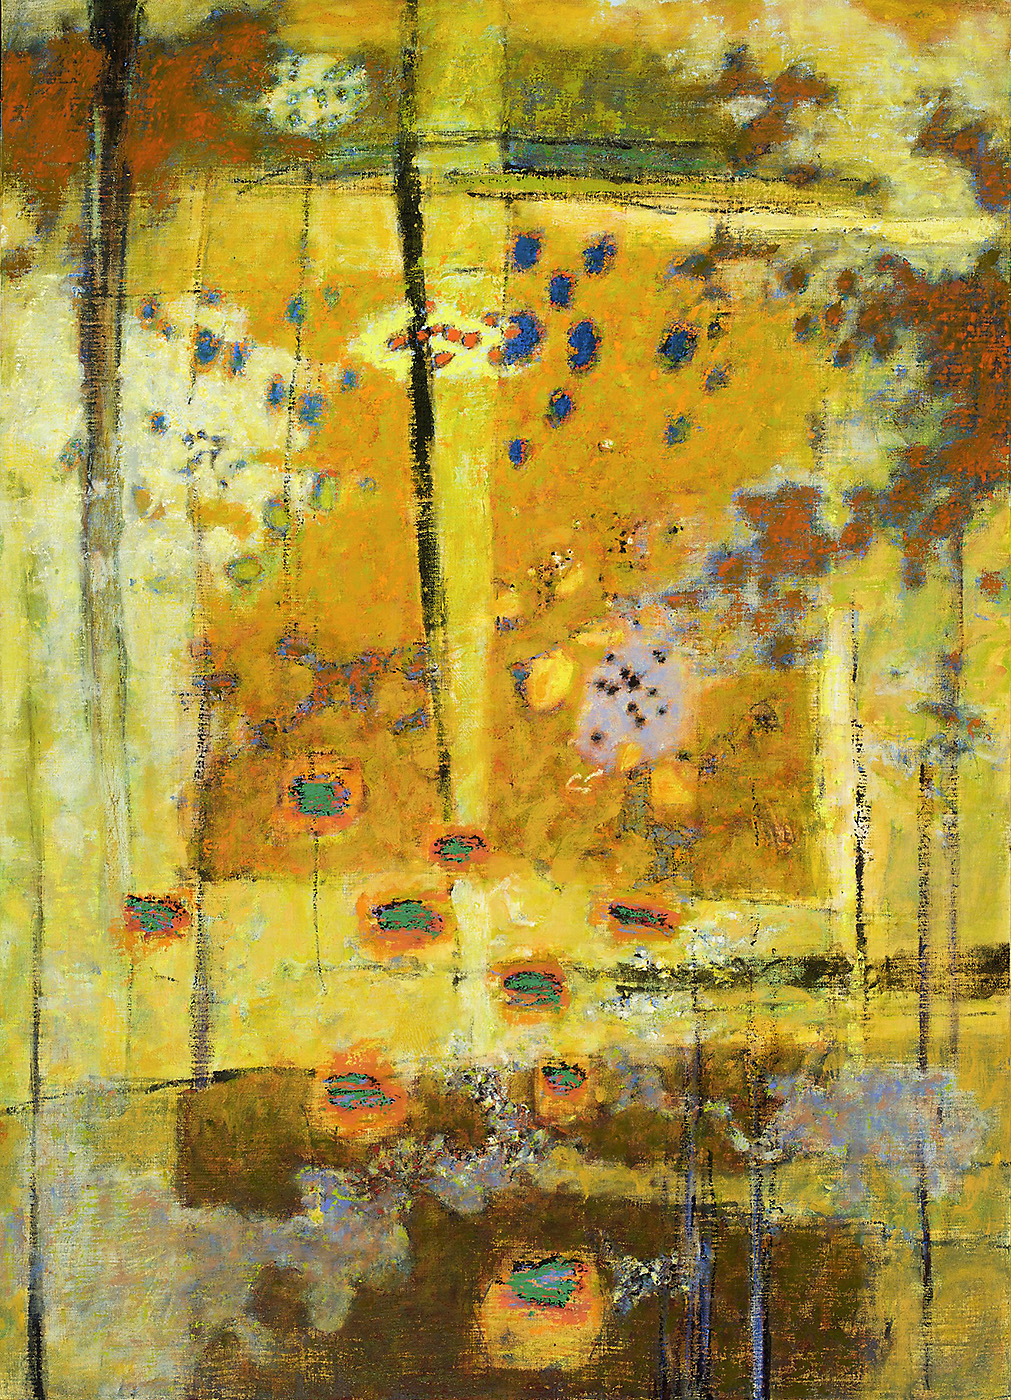 Restructuring   | oil on canvas | 50 x 36"